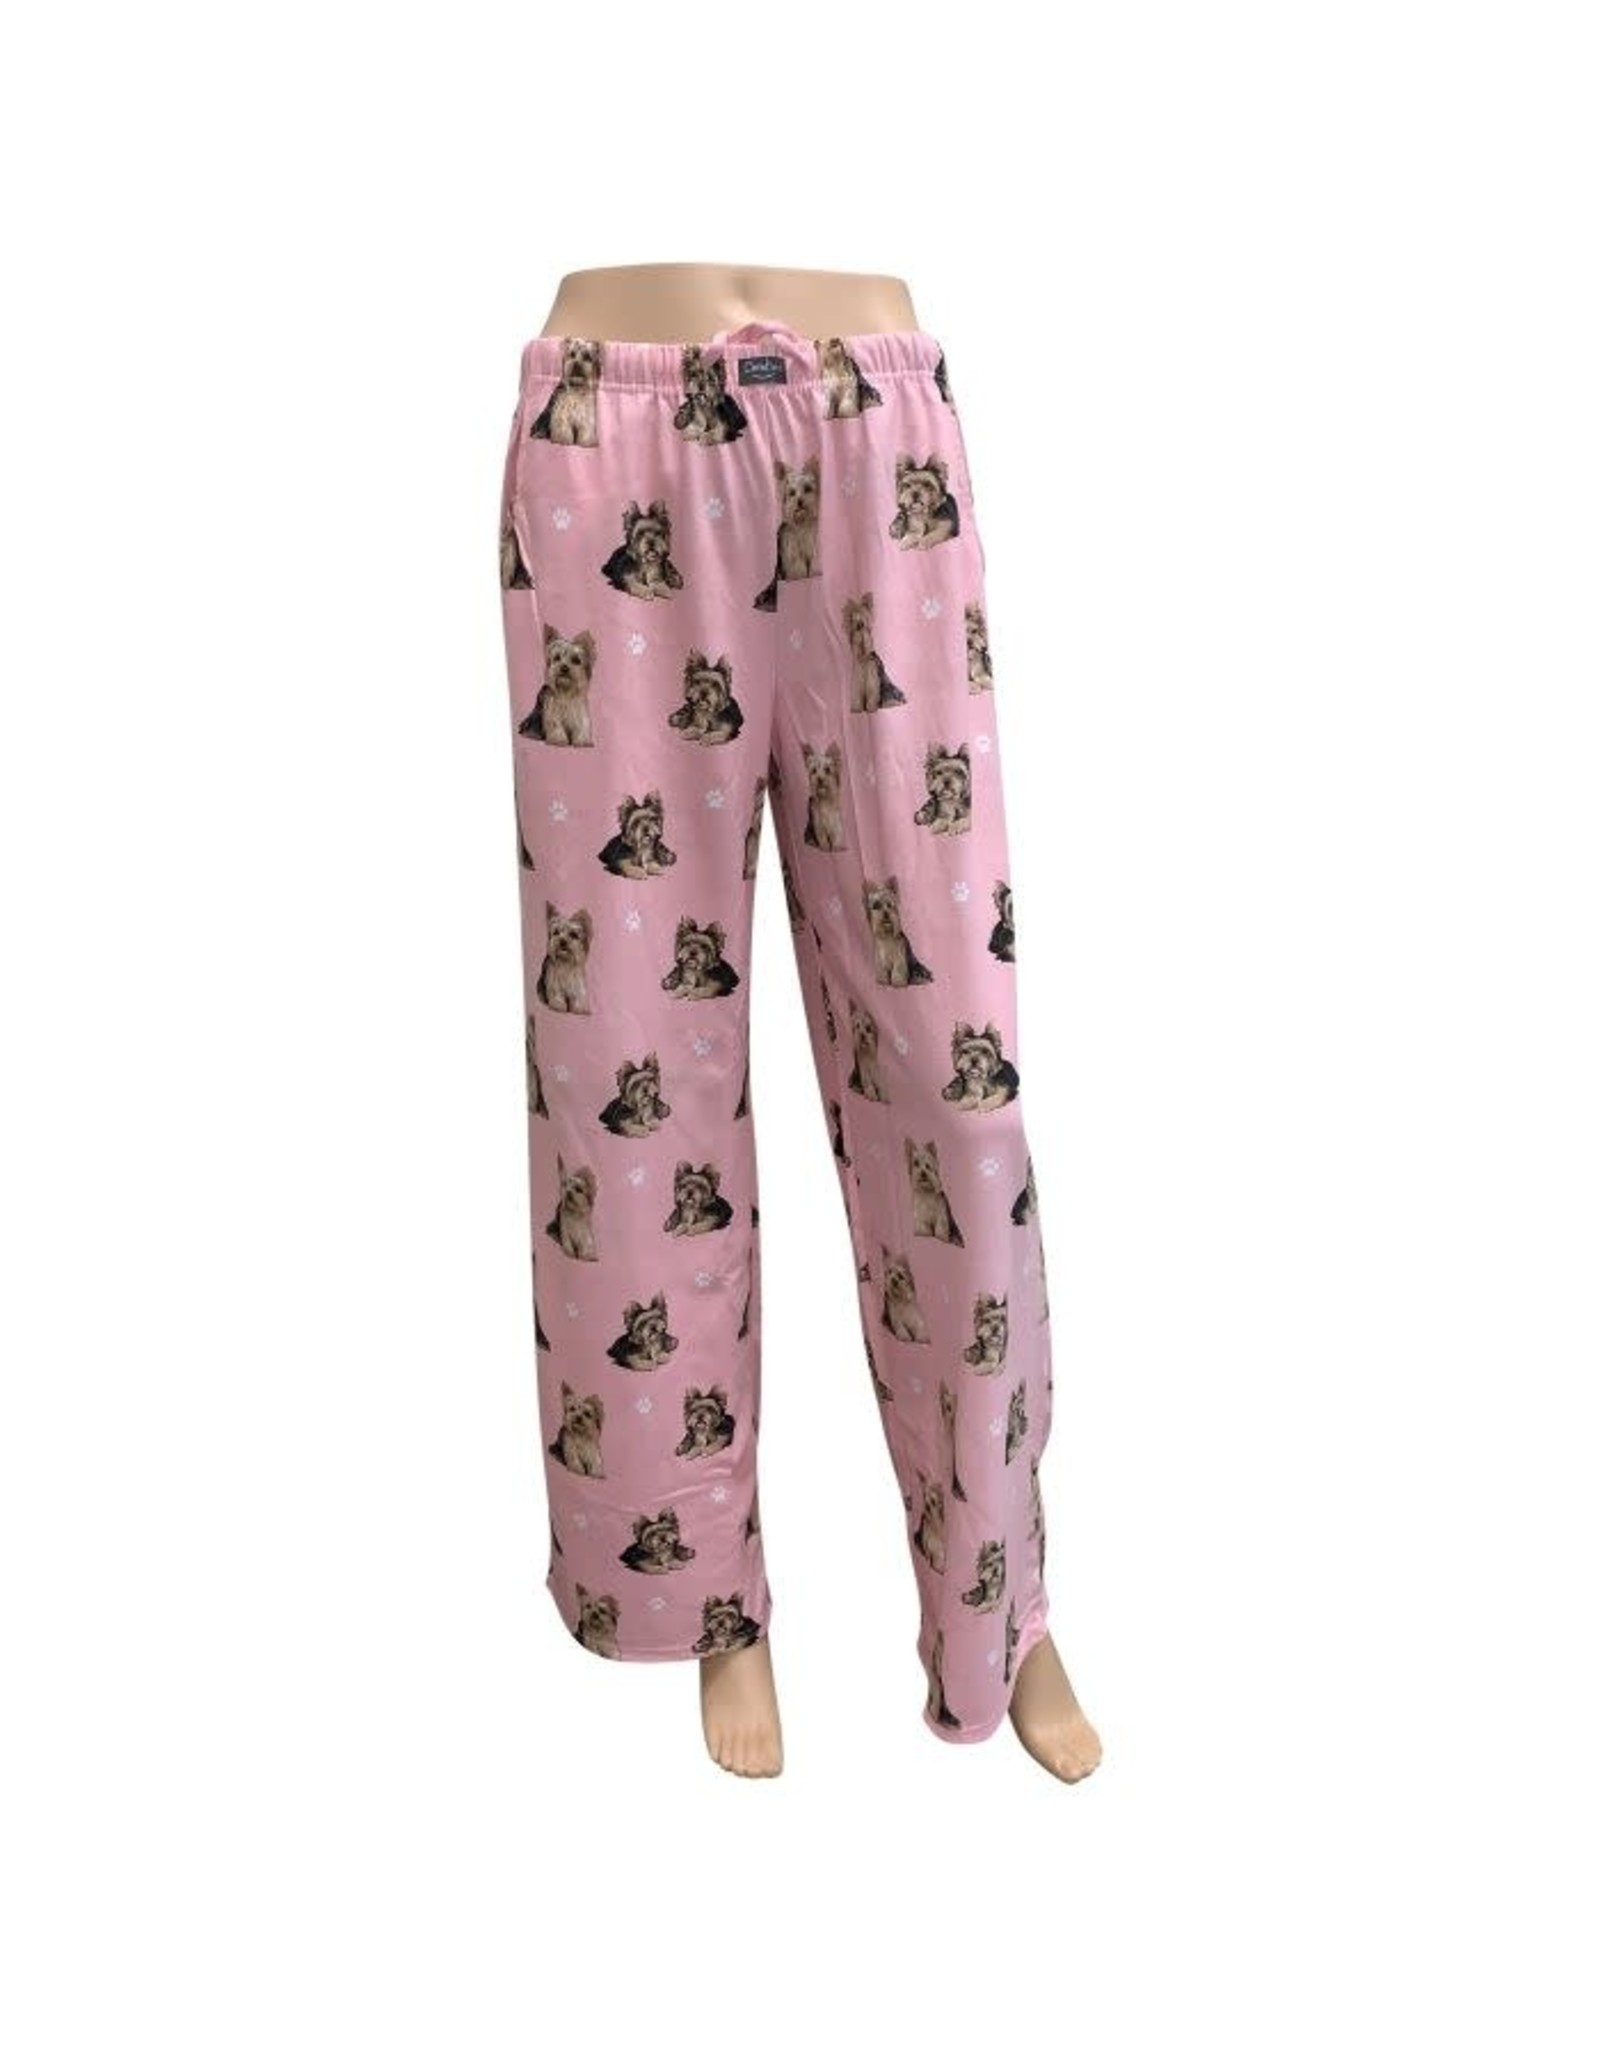 E and S YORKIE PAJAMA BOTTOMS